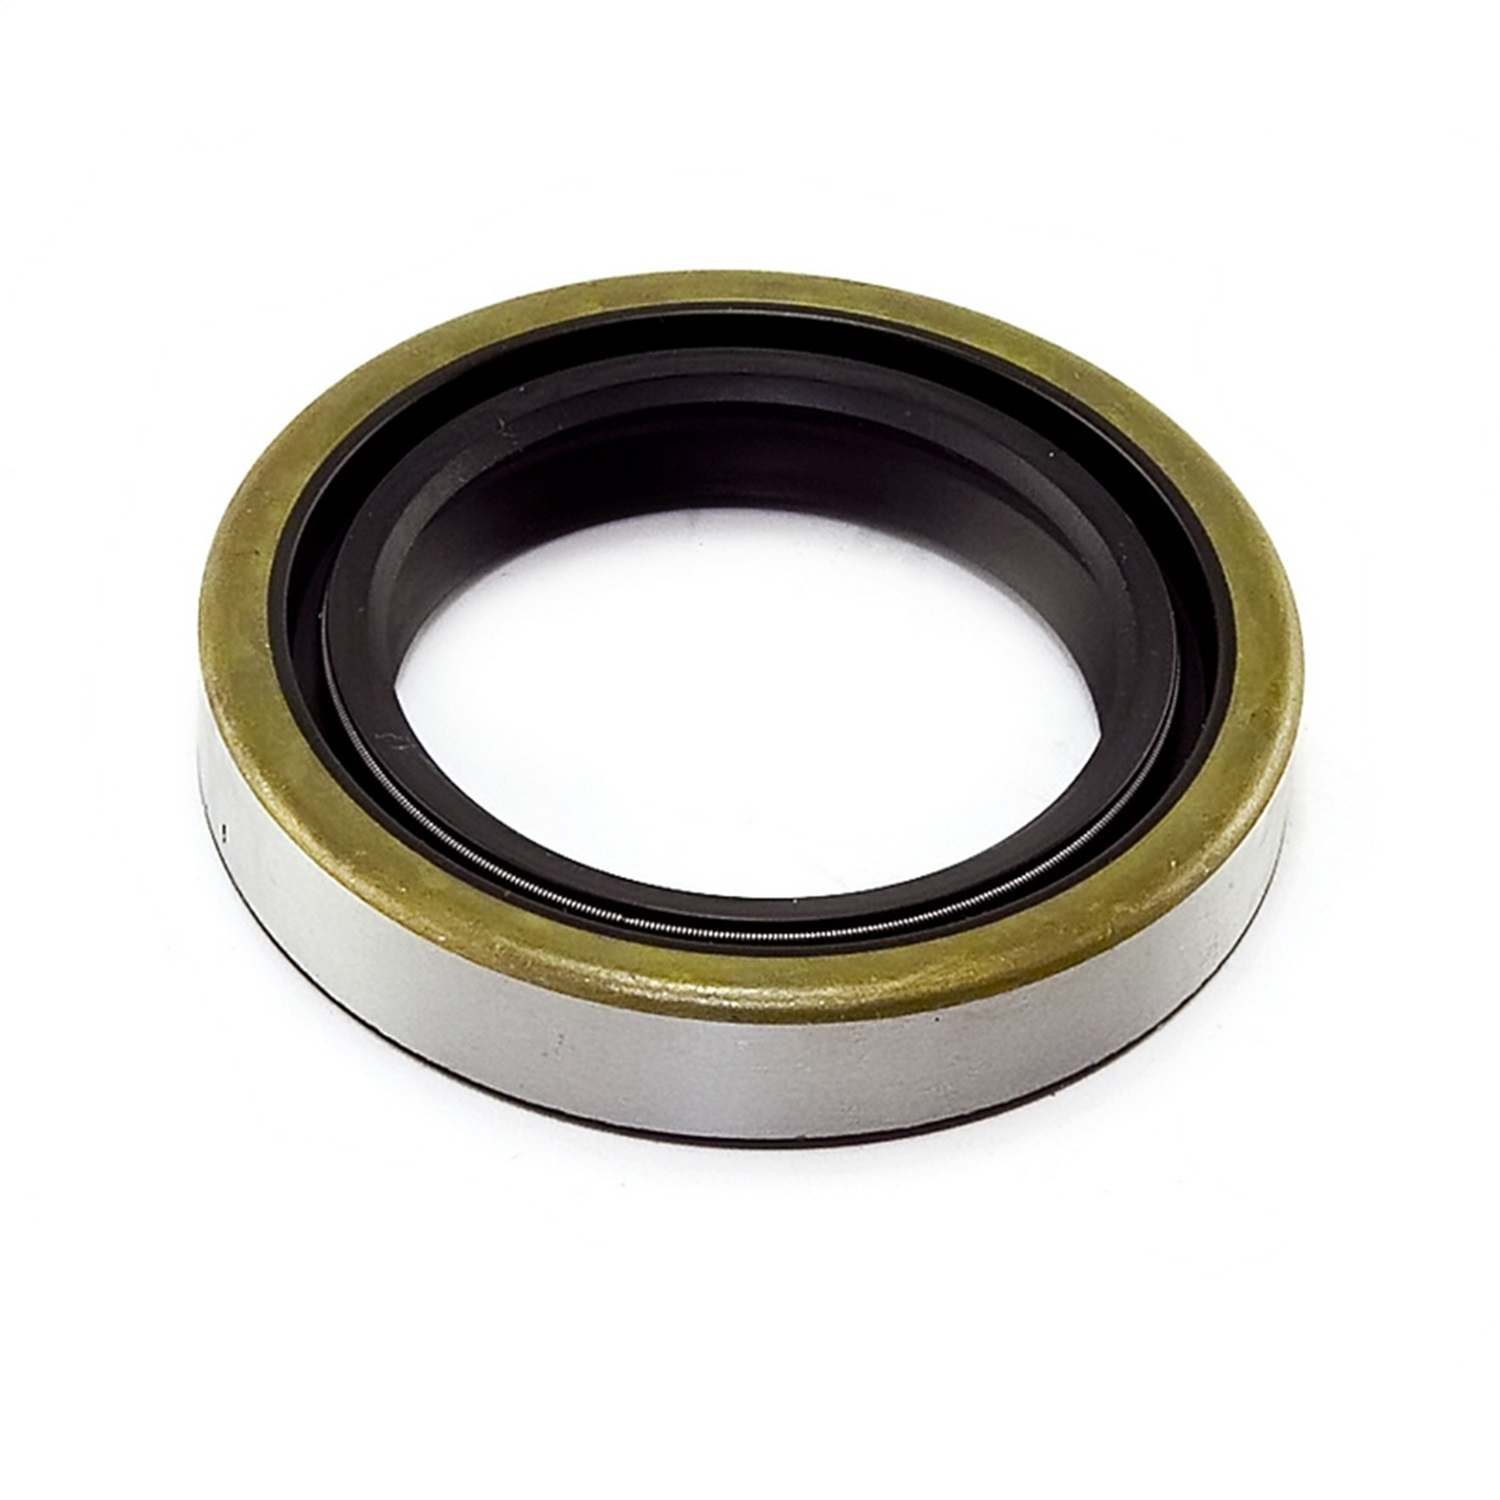 Rugged Ridge Transfer Case Slip Yoke Eliminator Seal Kit